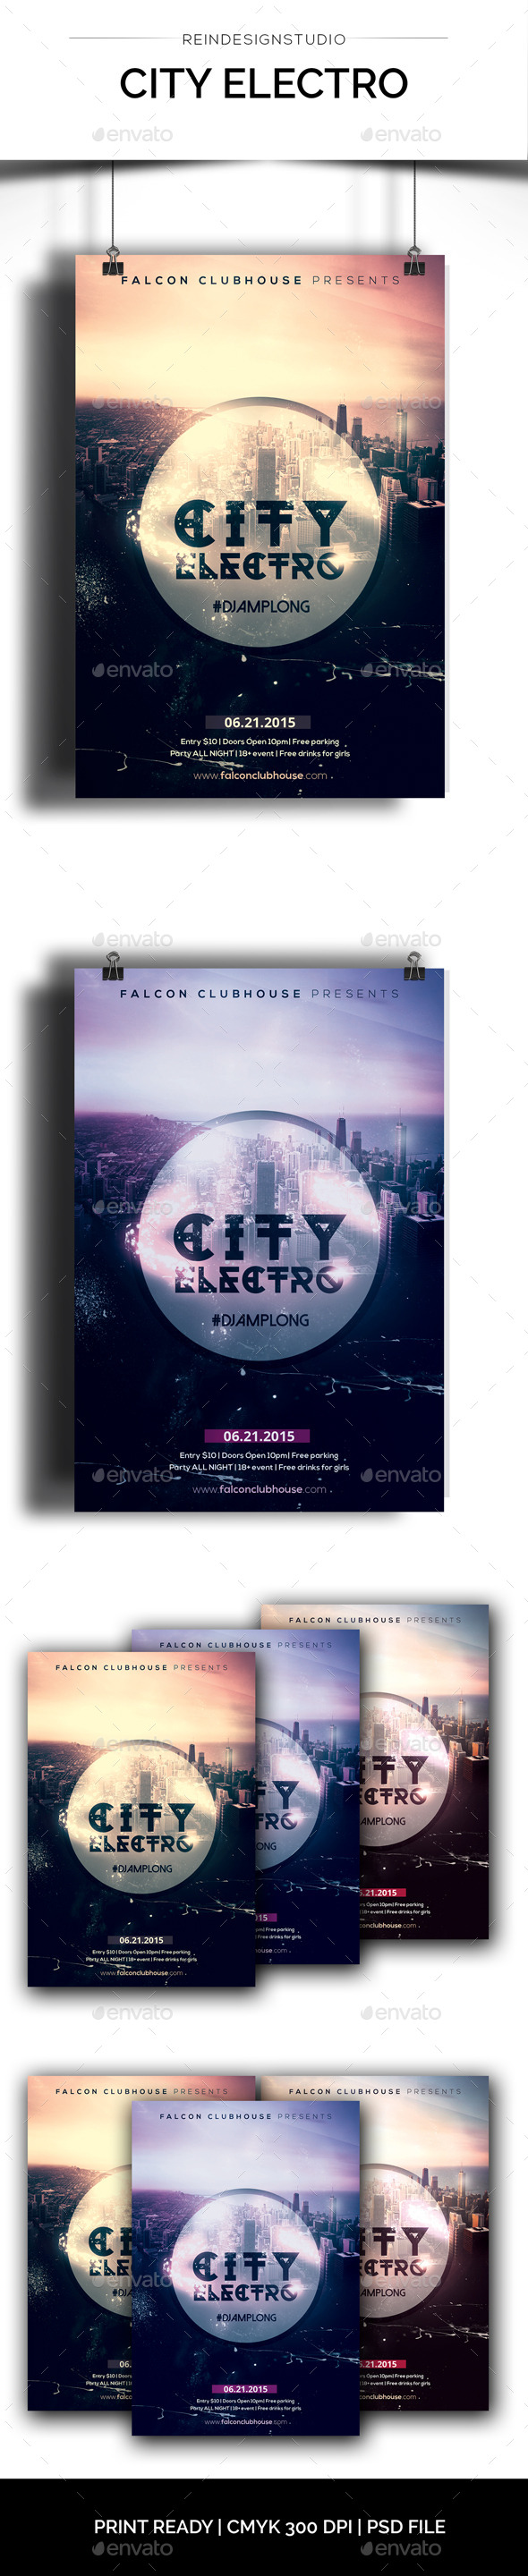 City Electro - Events Flyers